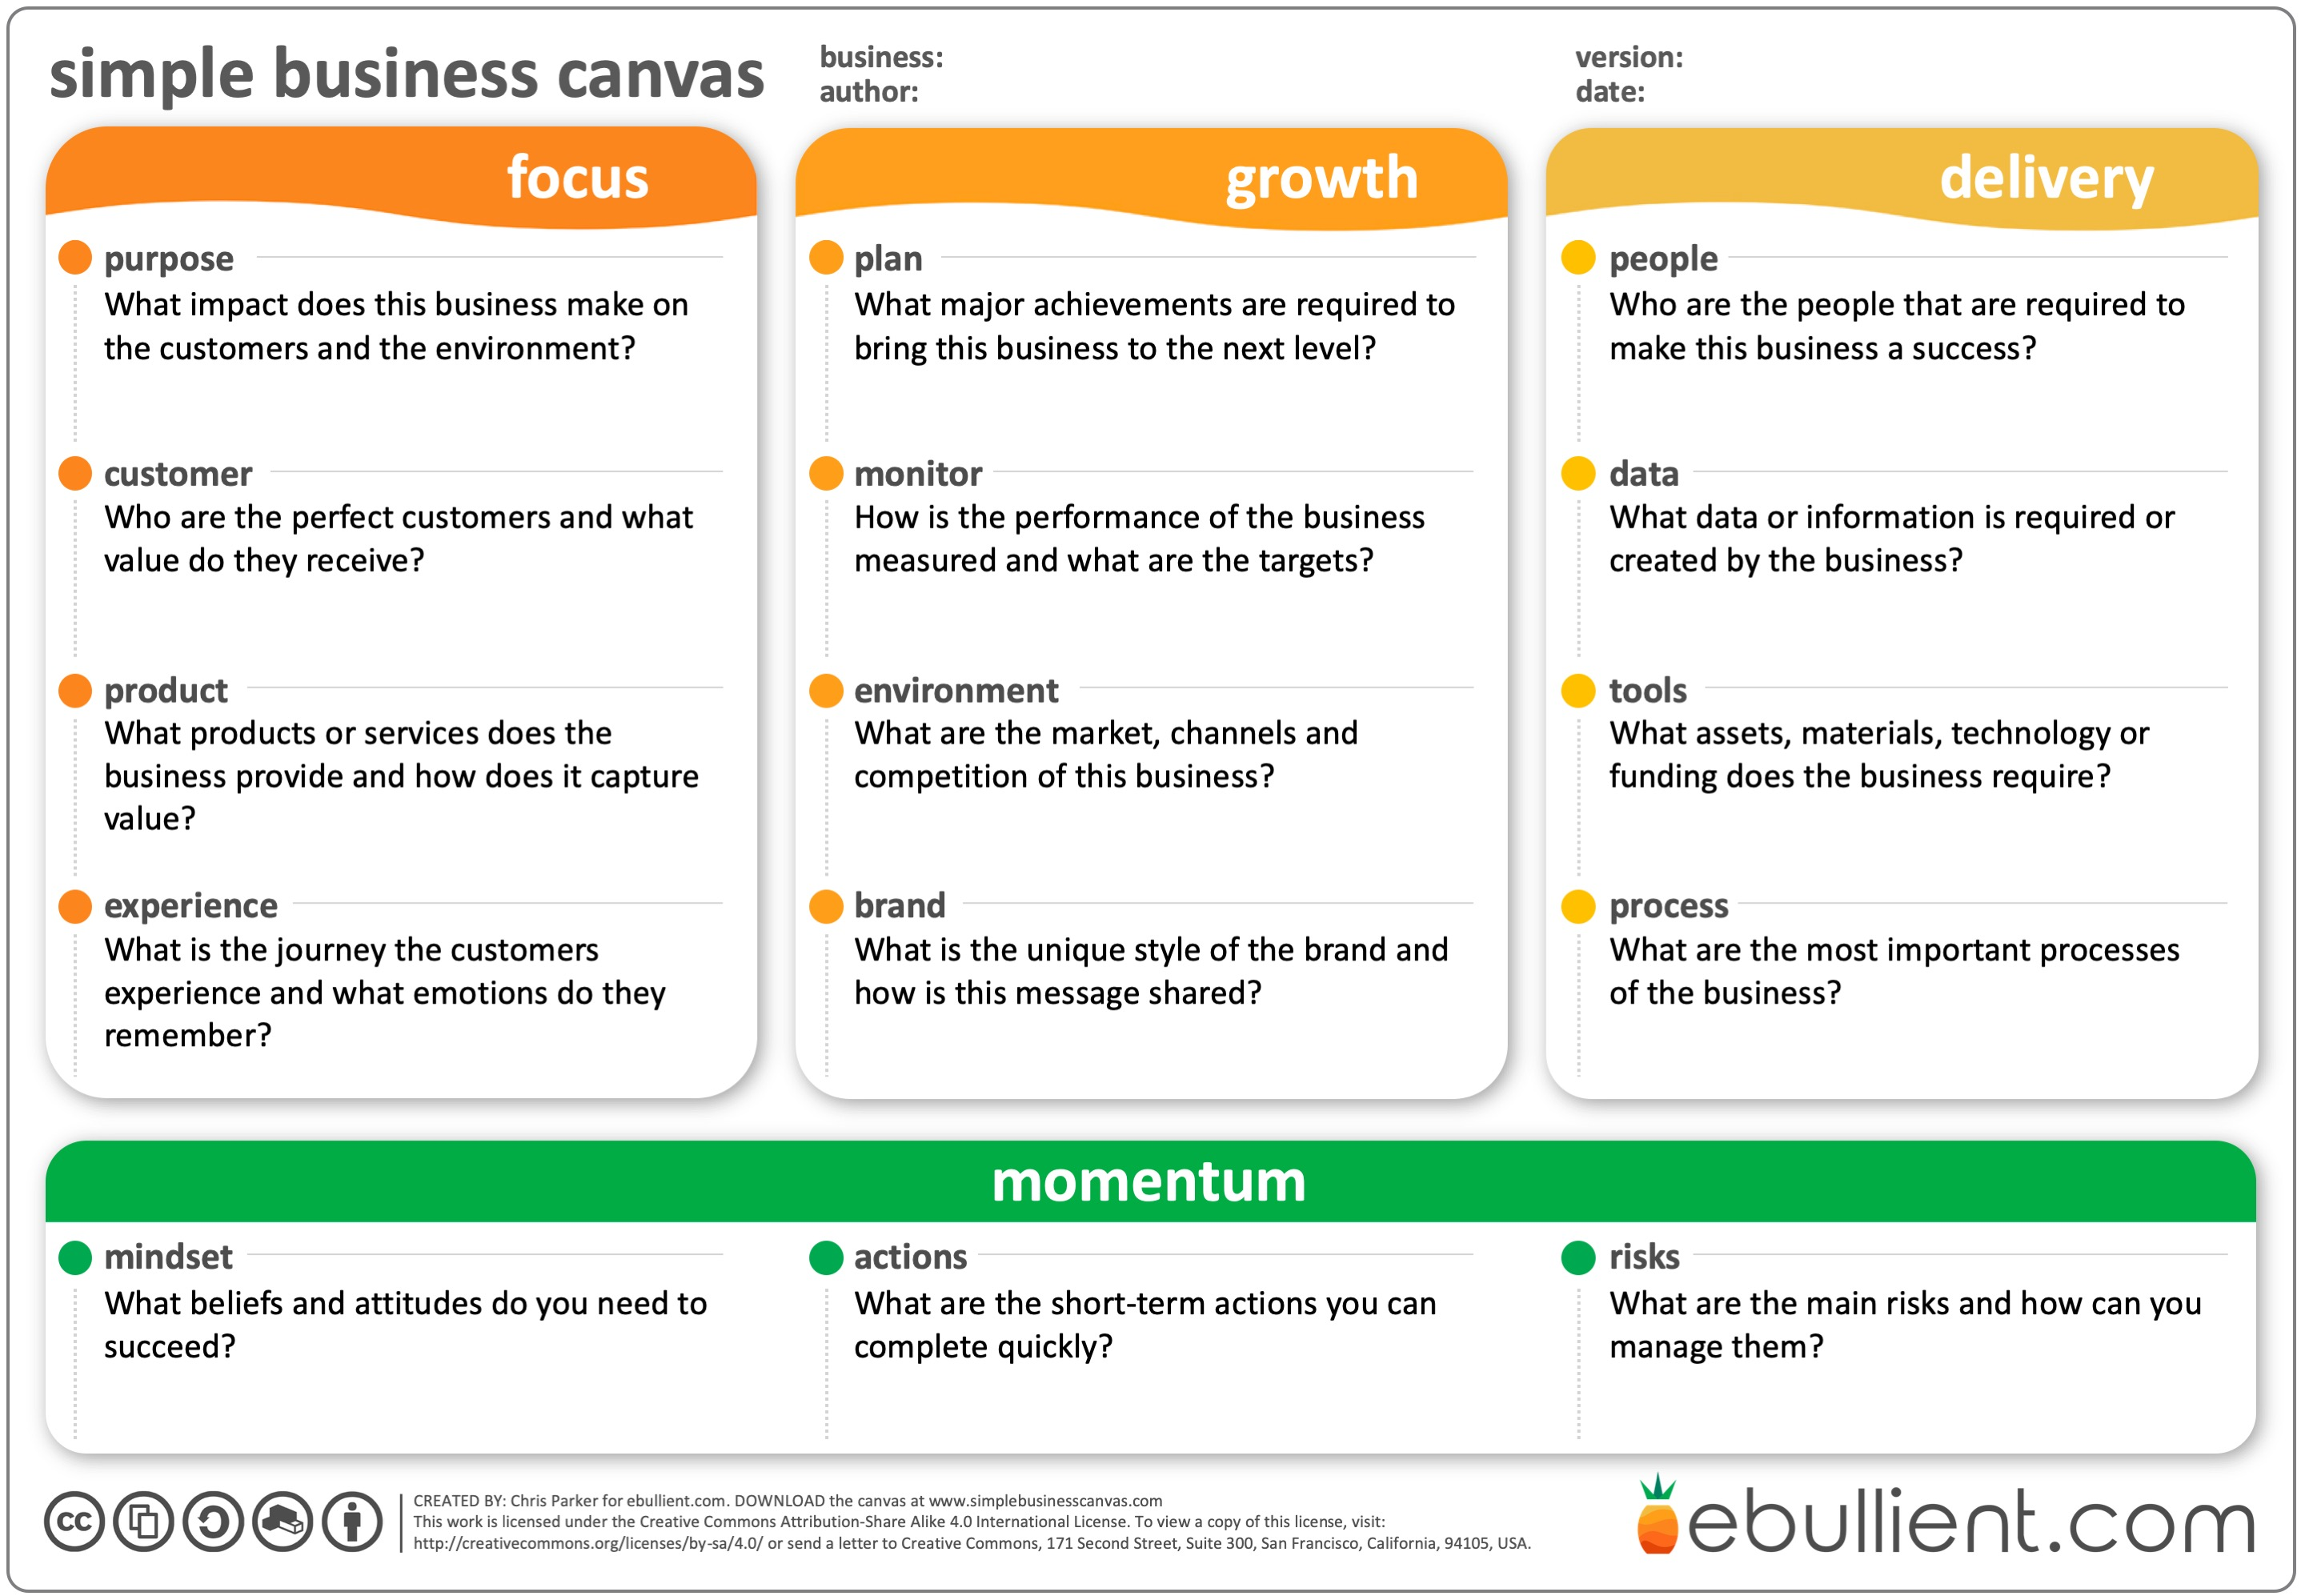 The Simple Business Canvas